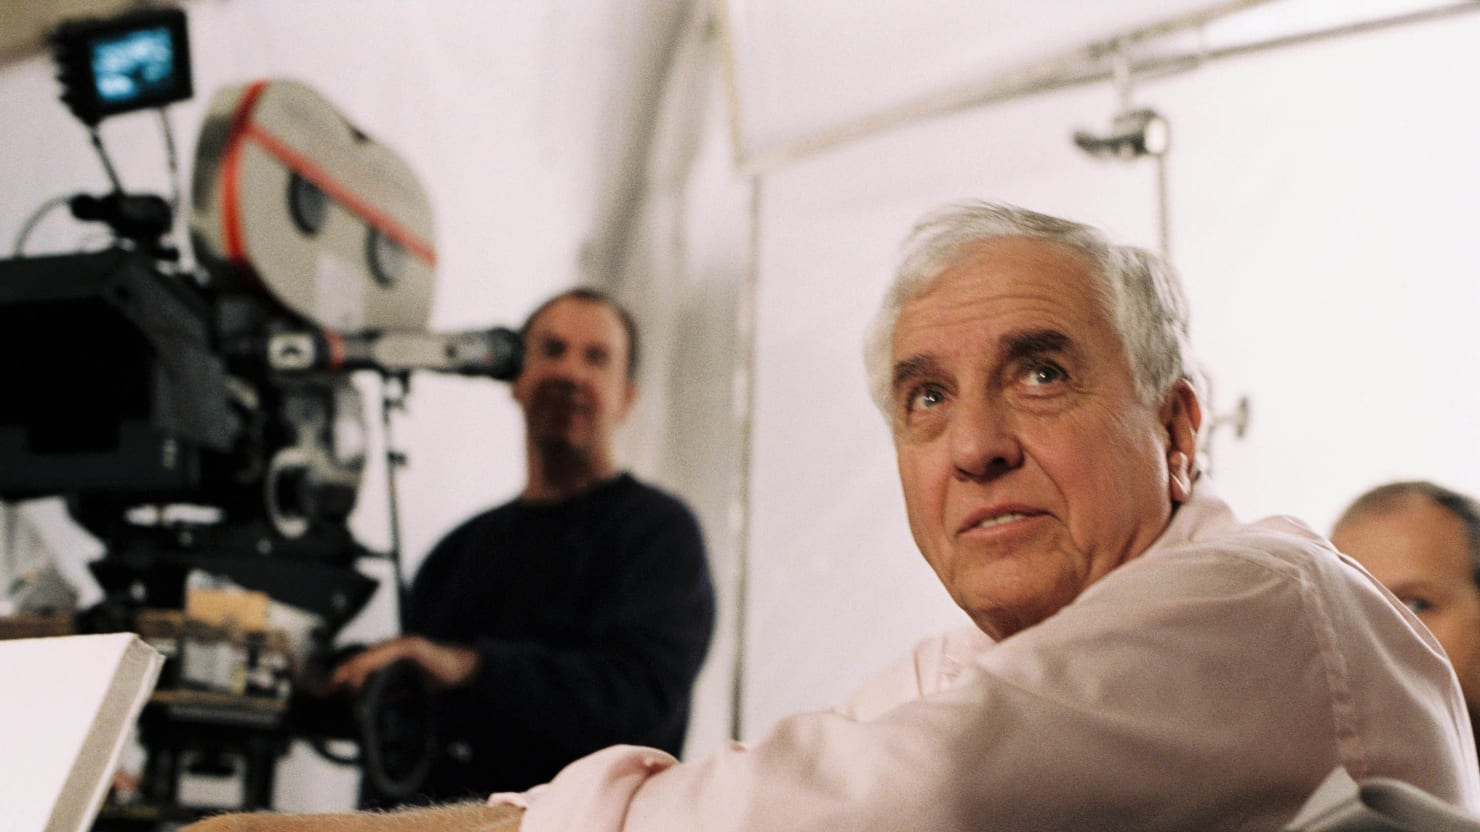 Remembering Garry Marshall: A Titan of Comedy and a Total Mensch